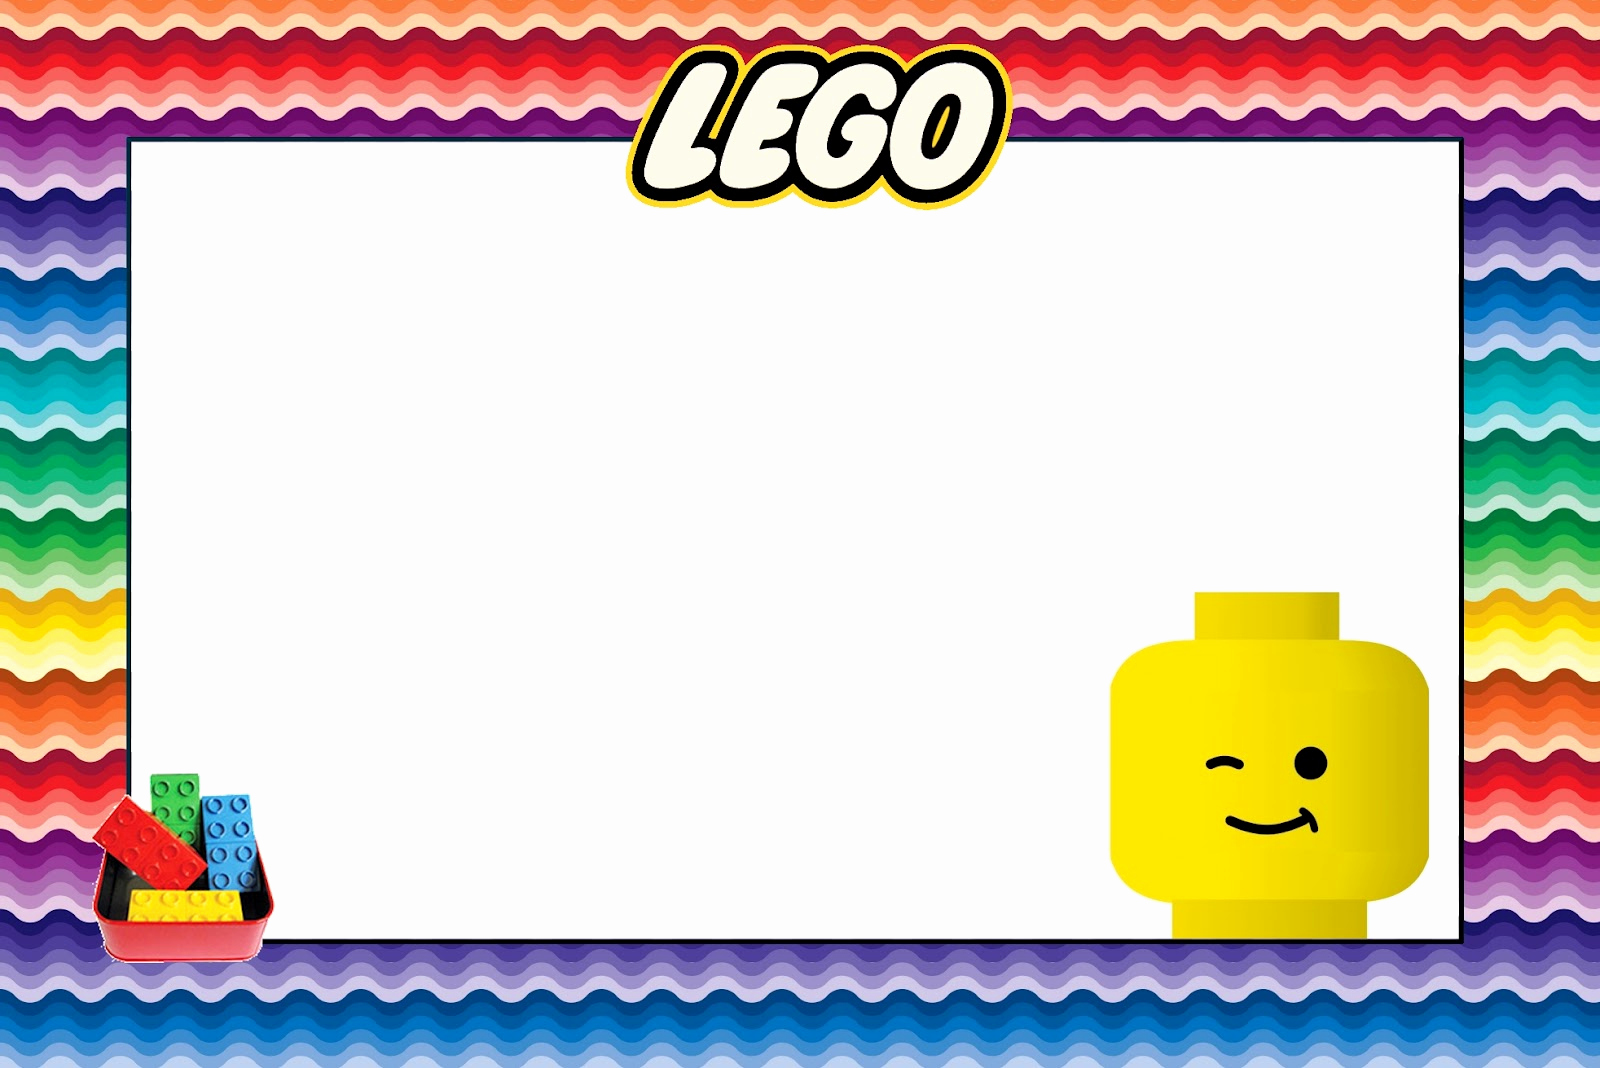 Lego Party Invitation Printable Unique Lego Free Printable Invitations